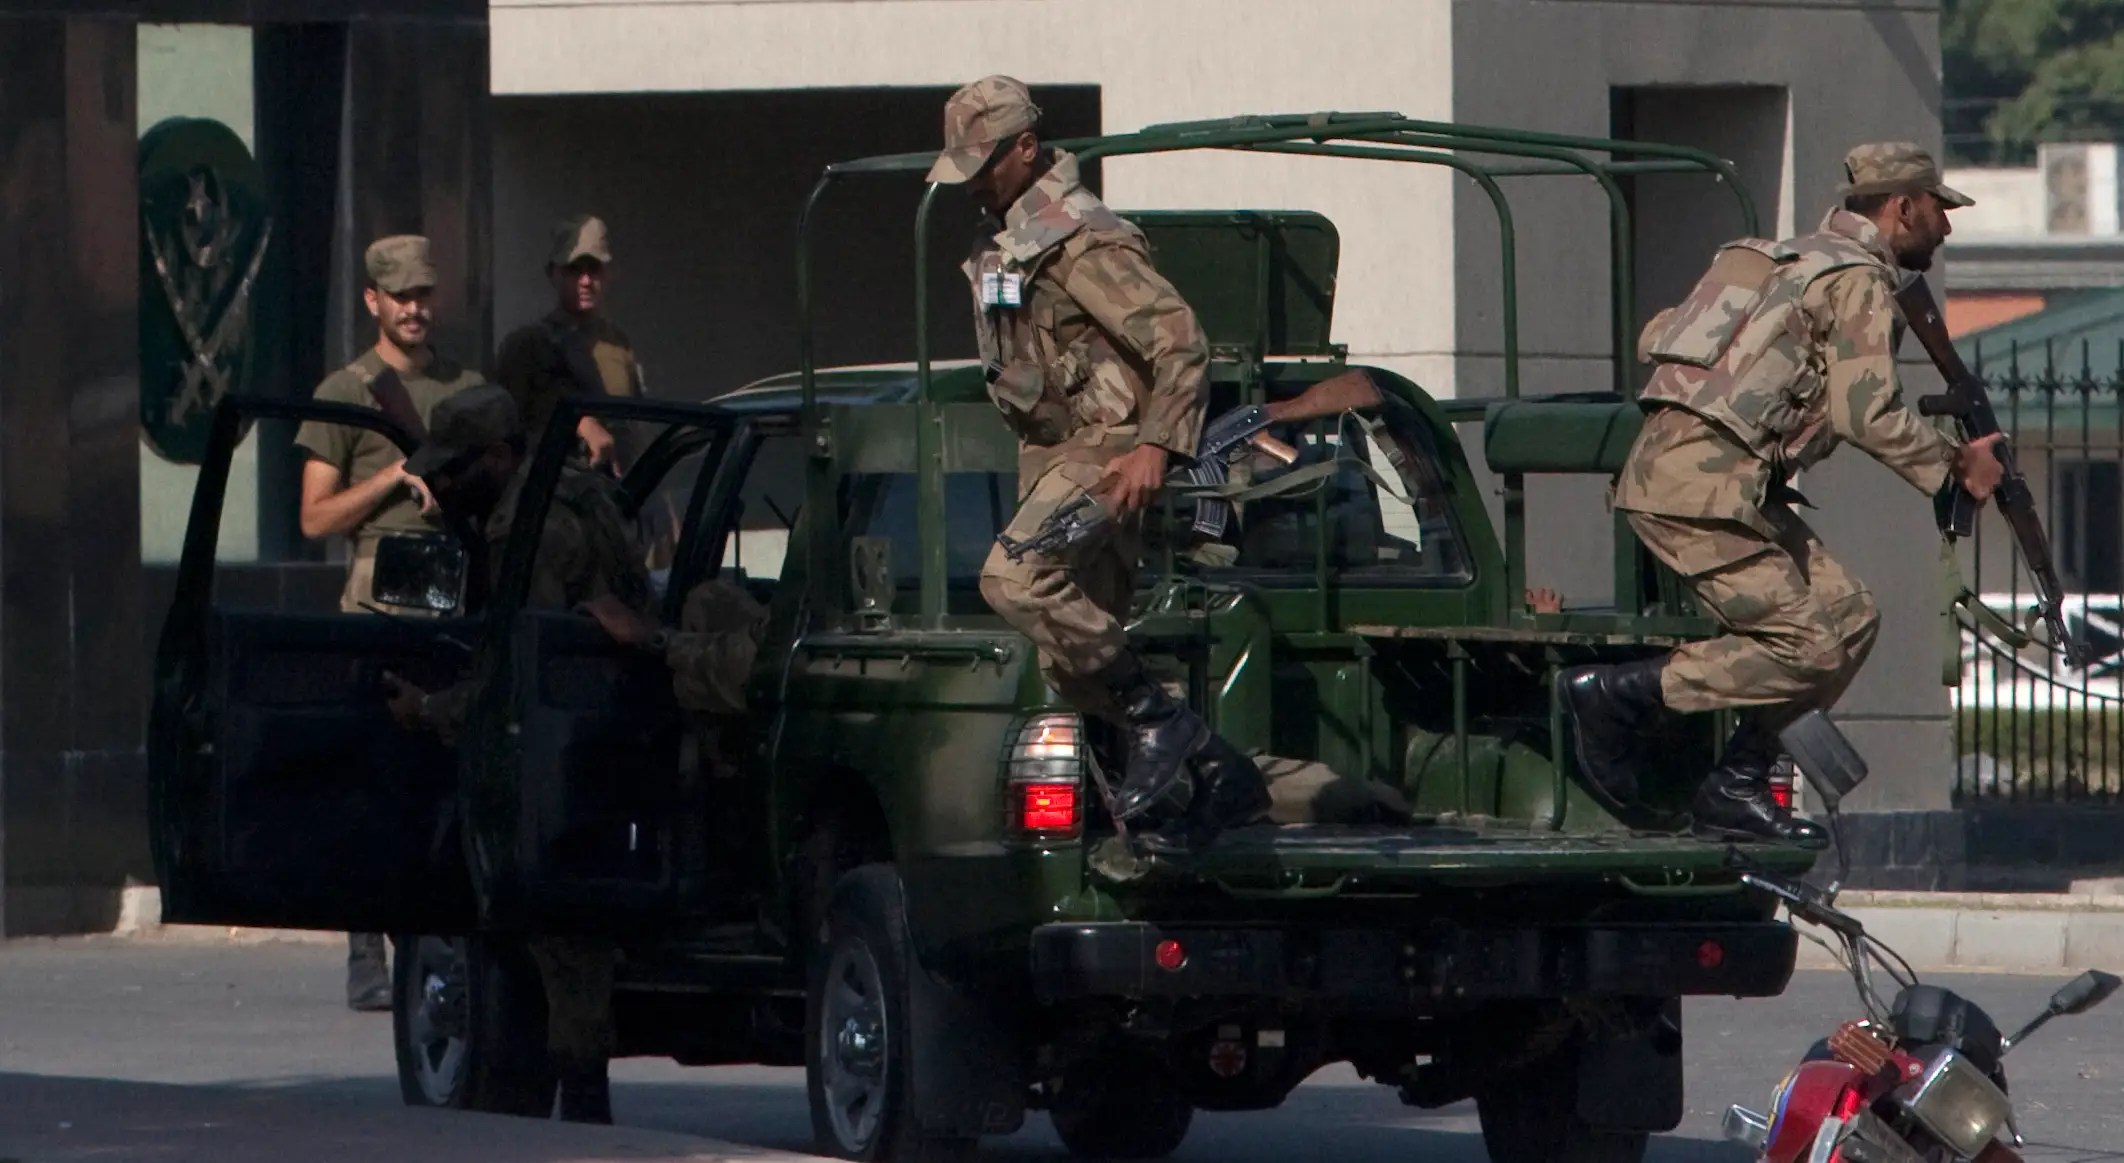 In October 2009, SSG commandos stormed an office building and rescued about 40 people taken hostage by suspected Taliban militants after an attack on the army's headquarters.